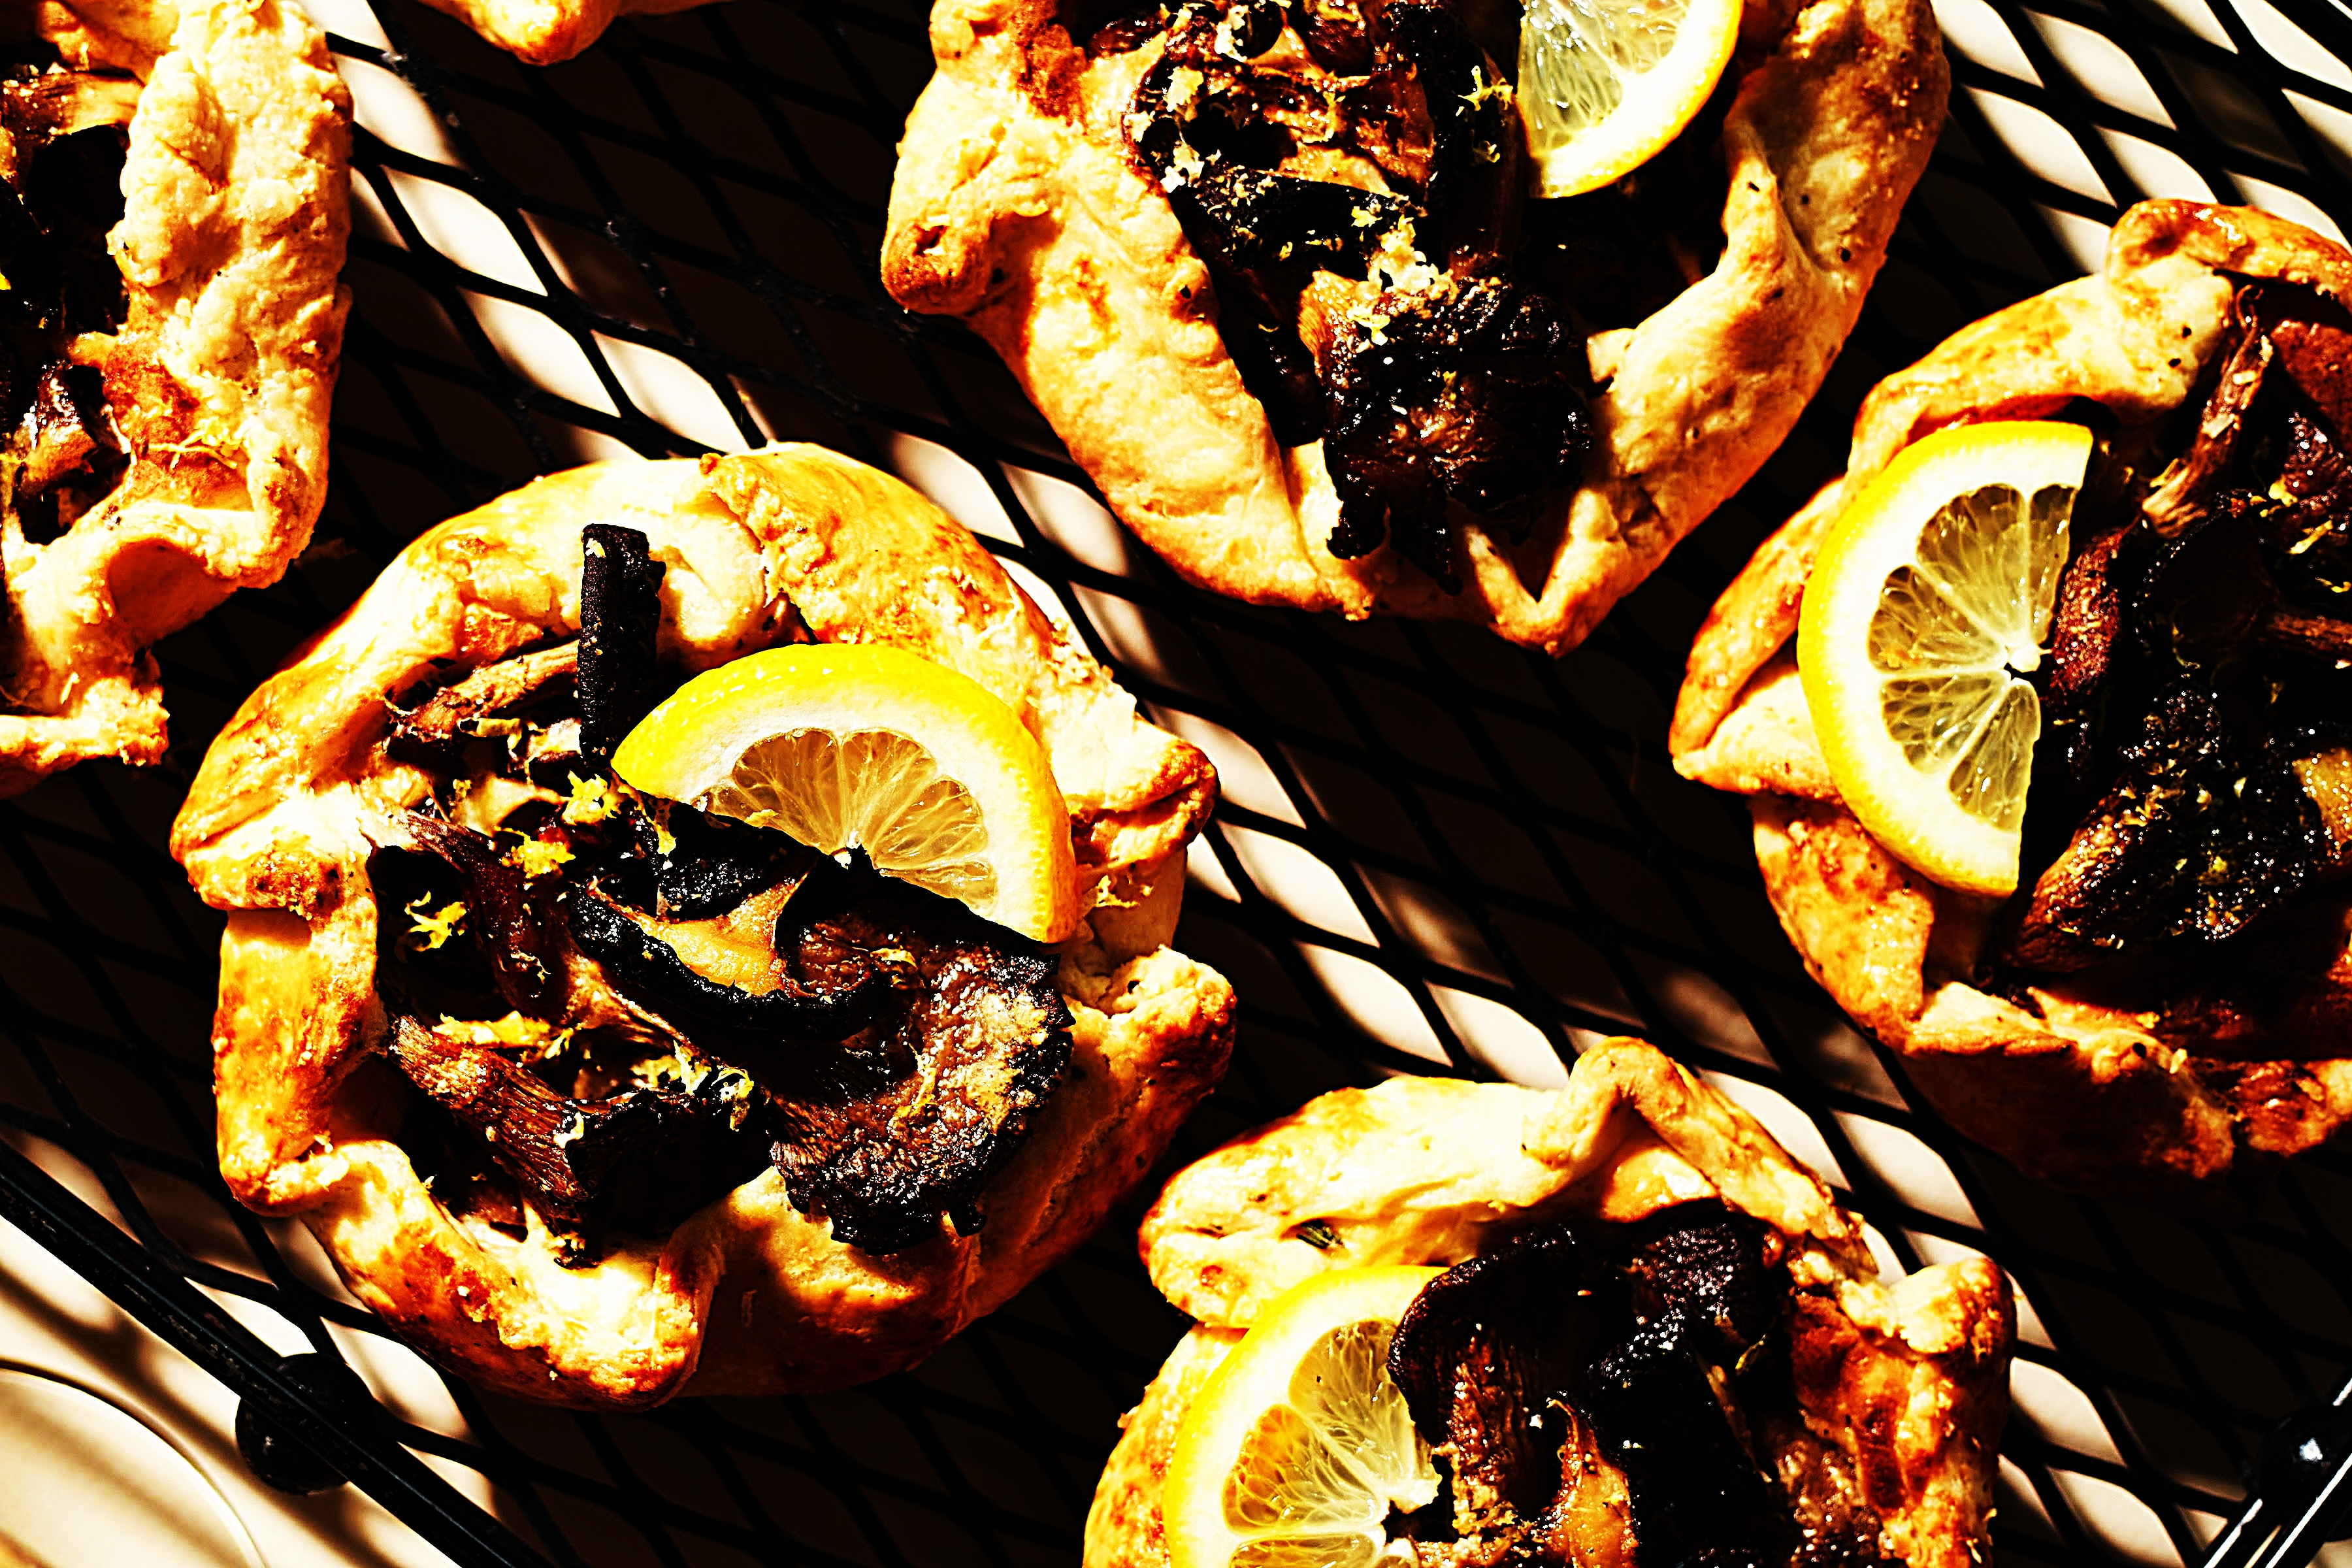 Stupid-Easy Recipe for Savory Mushroom Galettes (#1 Top-Rated)